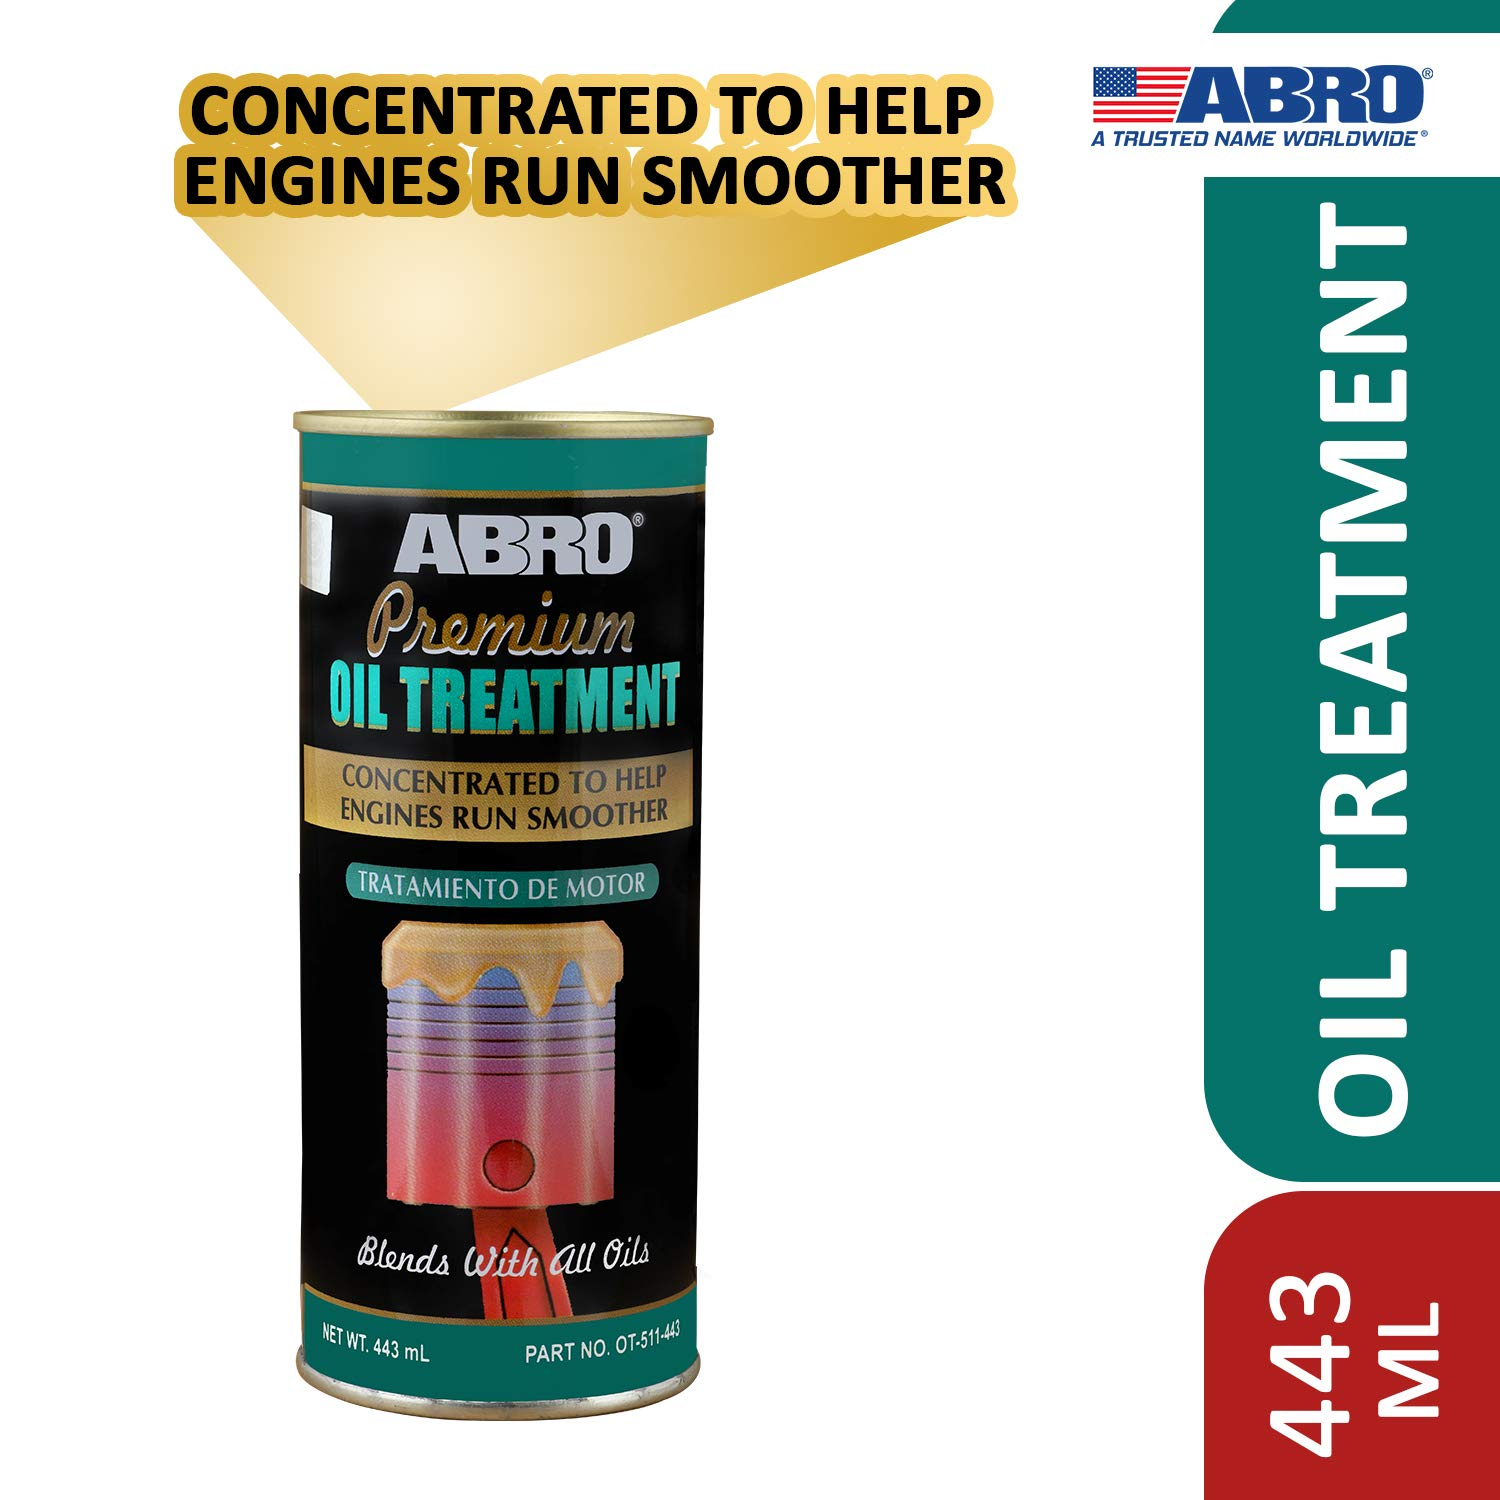 Abro OT-511-443 Petrol & Diesel Engine Oil Treatment Friction & Sound Reducer for Car SUV & Auto (443 ml) product image